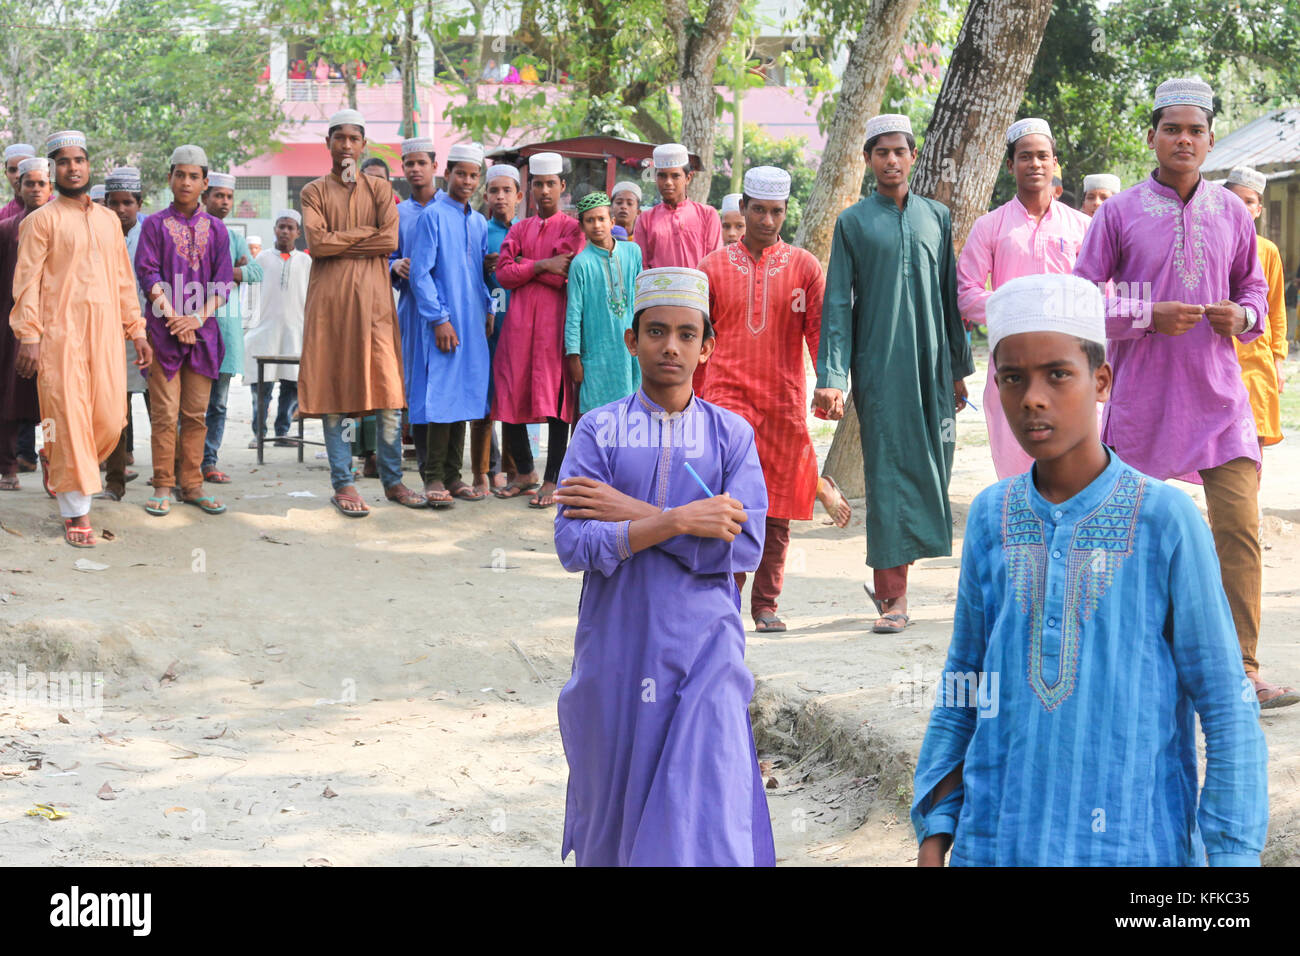 Schoolboys in colourful uniforms, Kalua, Chinni, Kurigram District, Bangladesh - Stock Image